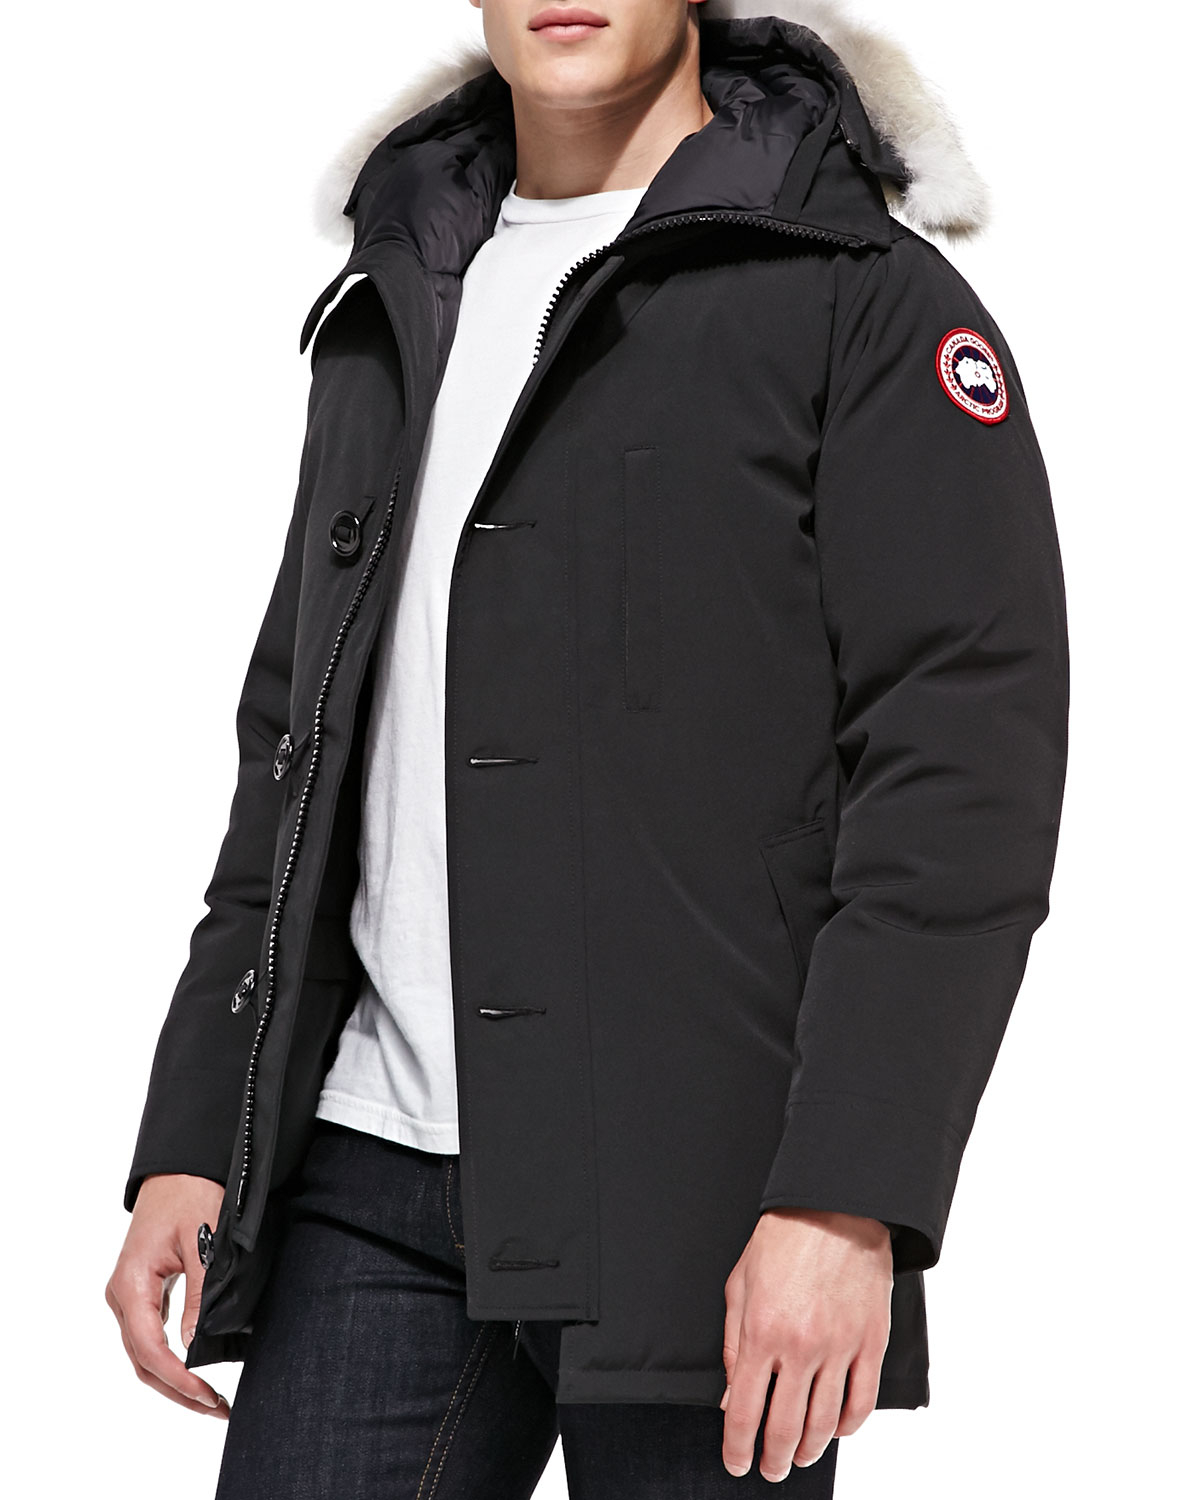 Canada Goose' Chateau Parka with Fur Hood - Graphite